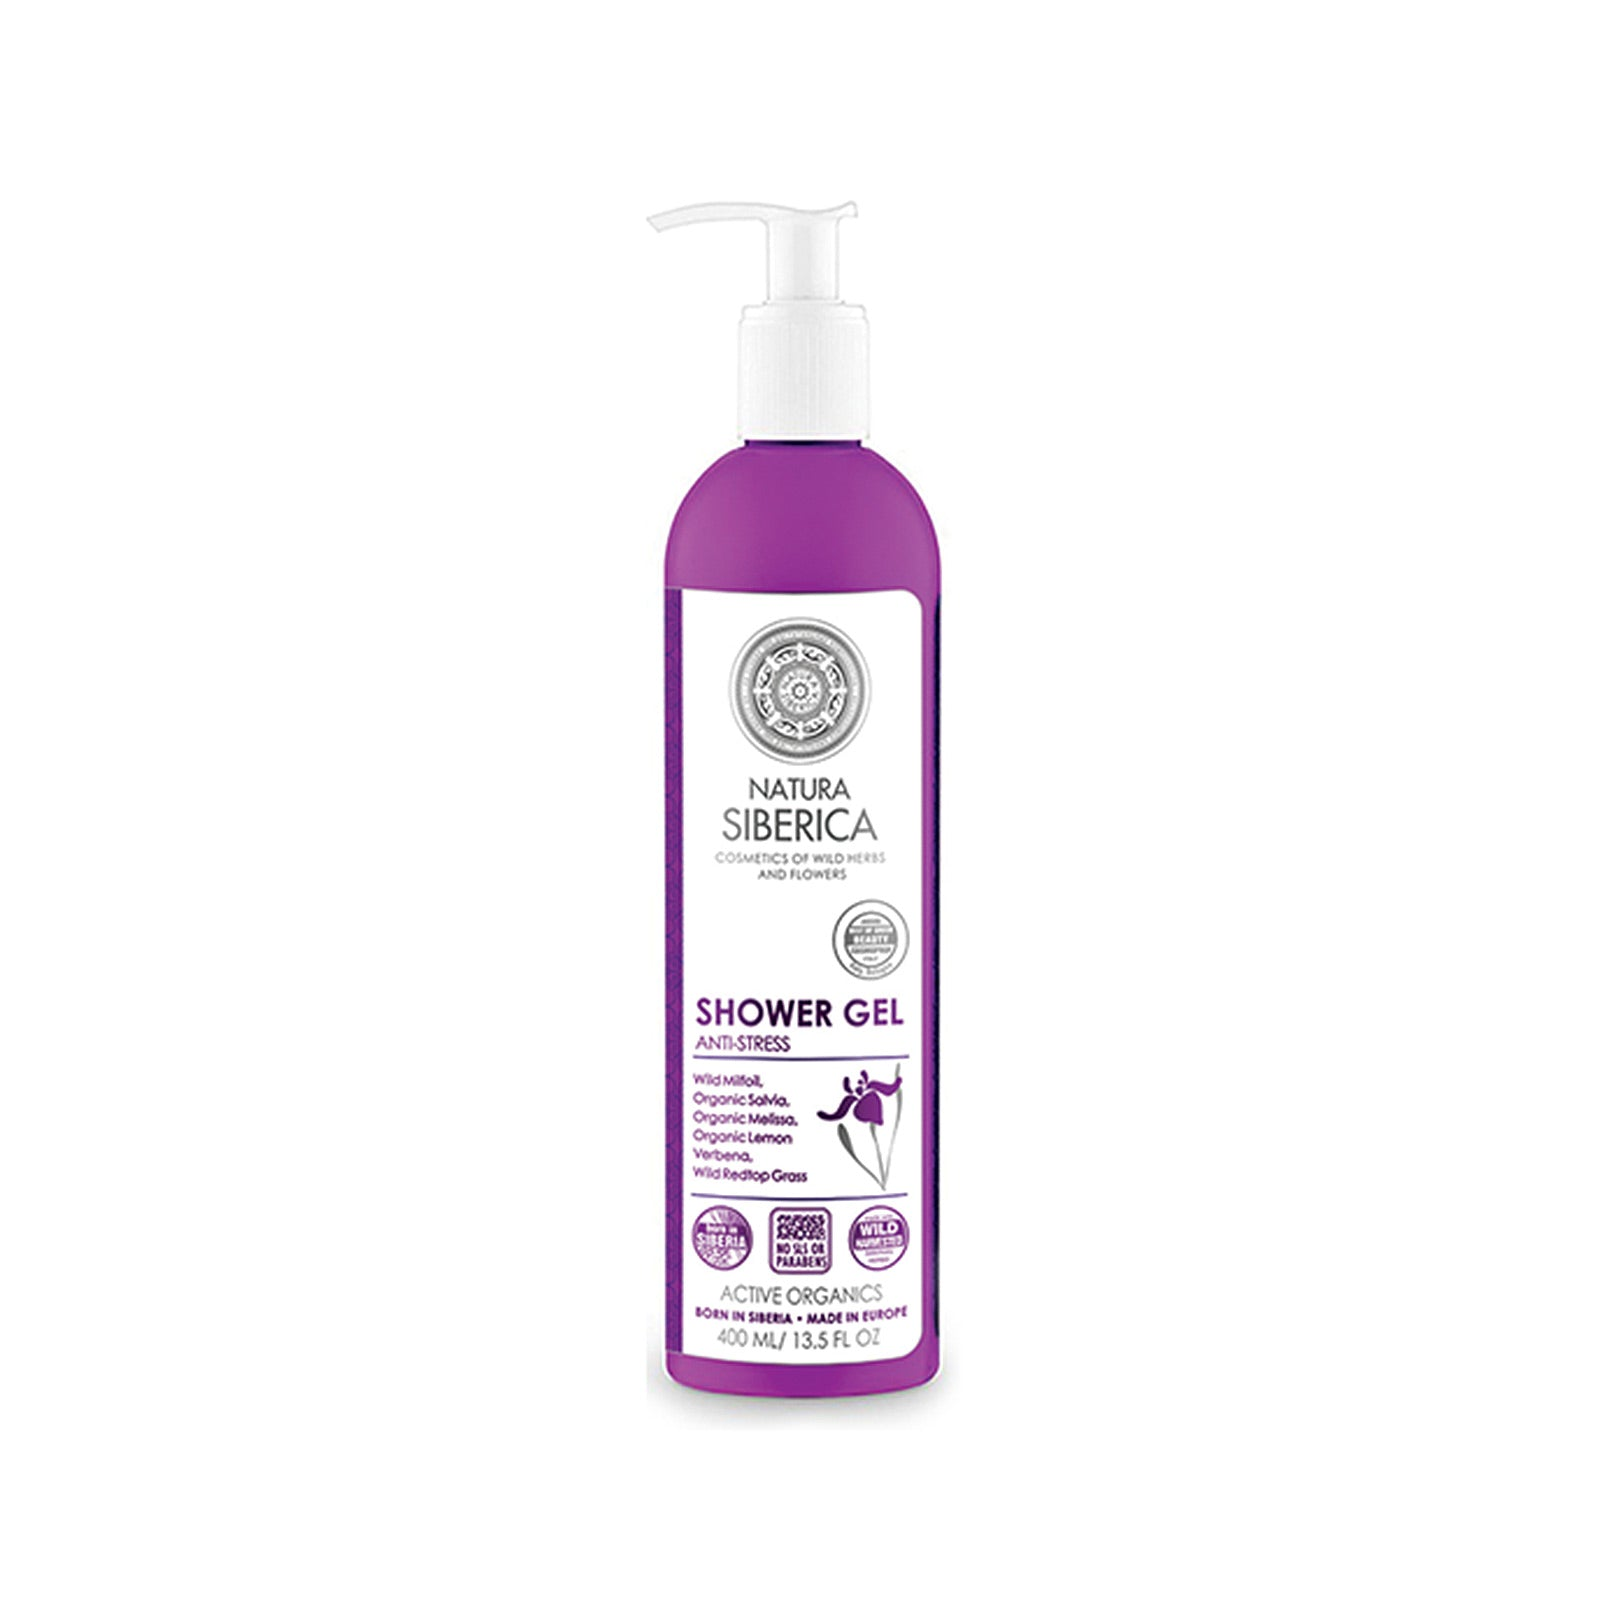 Anti-Stress Shower Gel, 400 ml